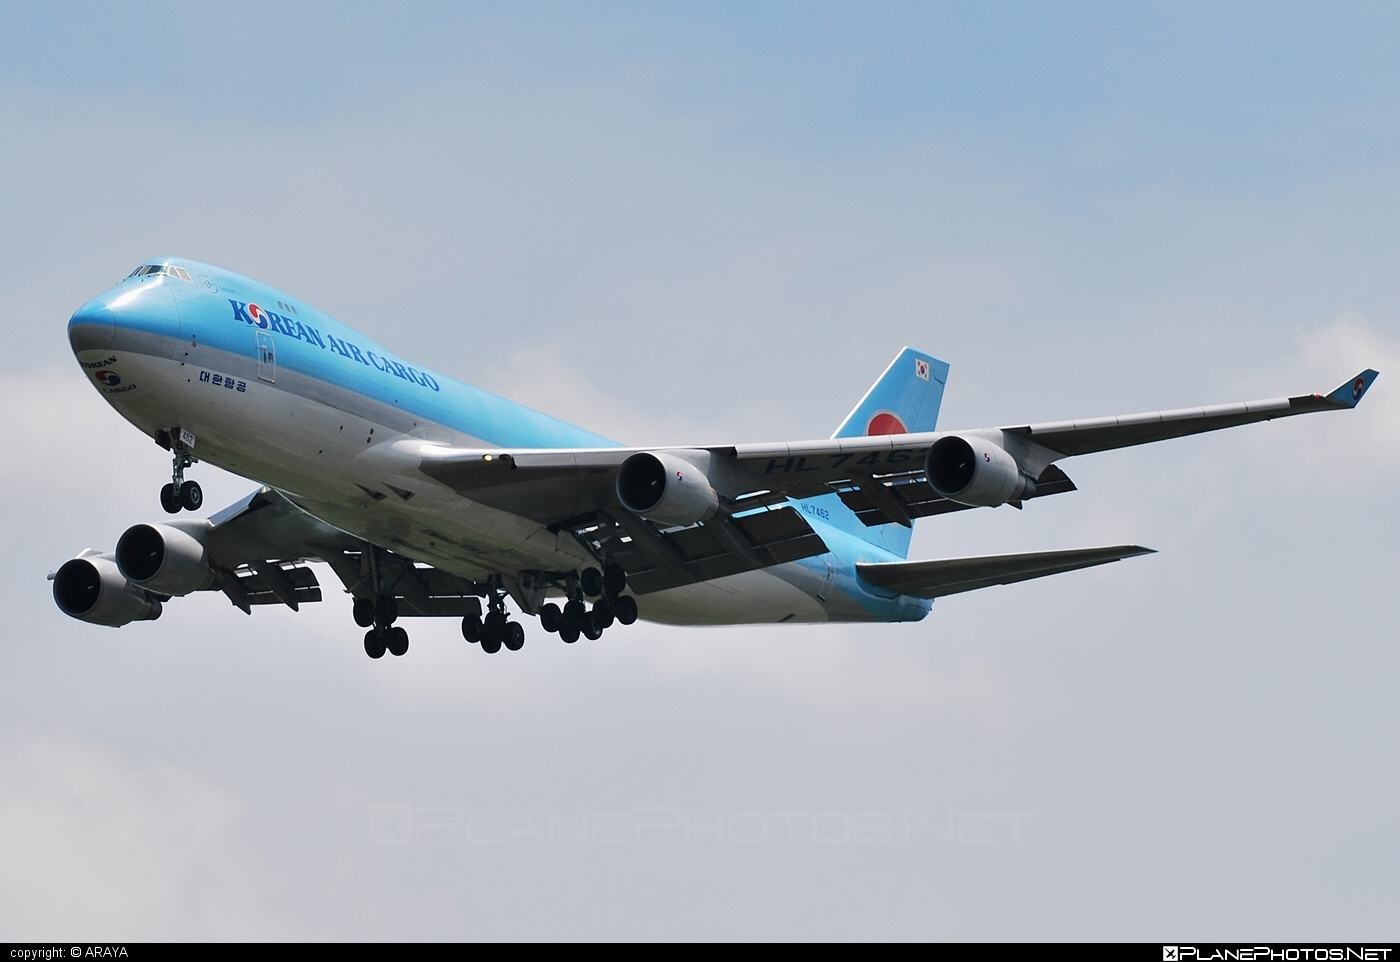 Boeing 747-400F - HL7462 operated by Korean Air Cargo #b747 #boeing #boeing747 #jumbo #koreanair #koreanaircargo